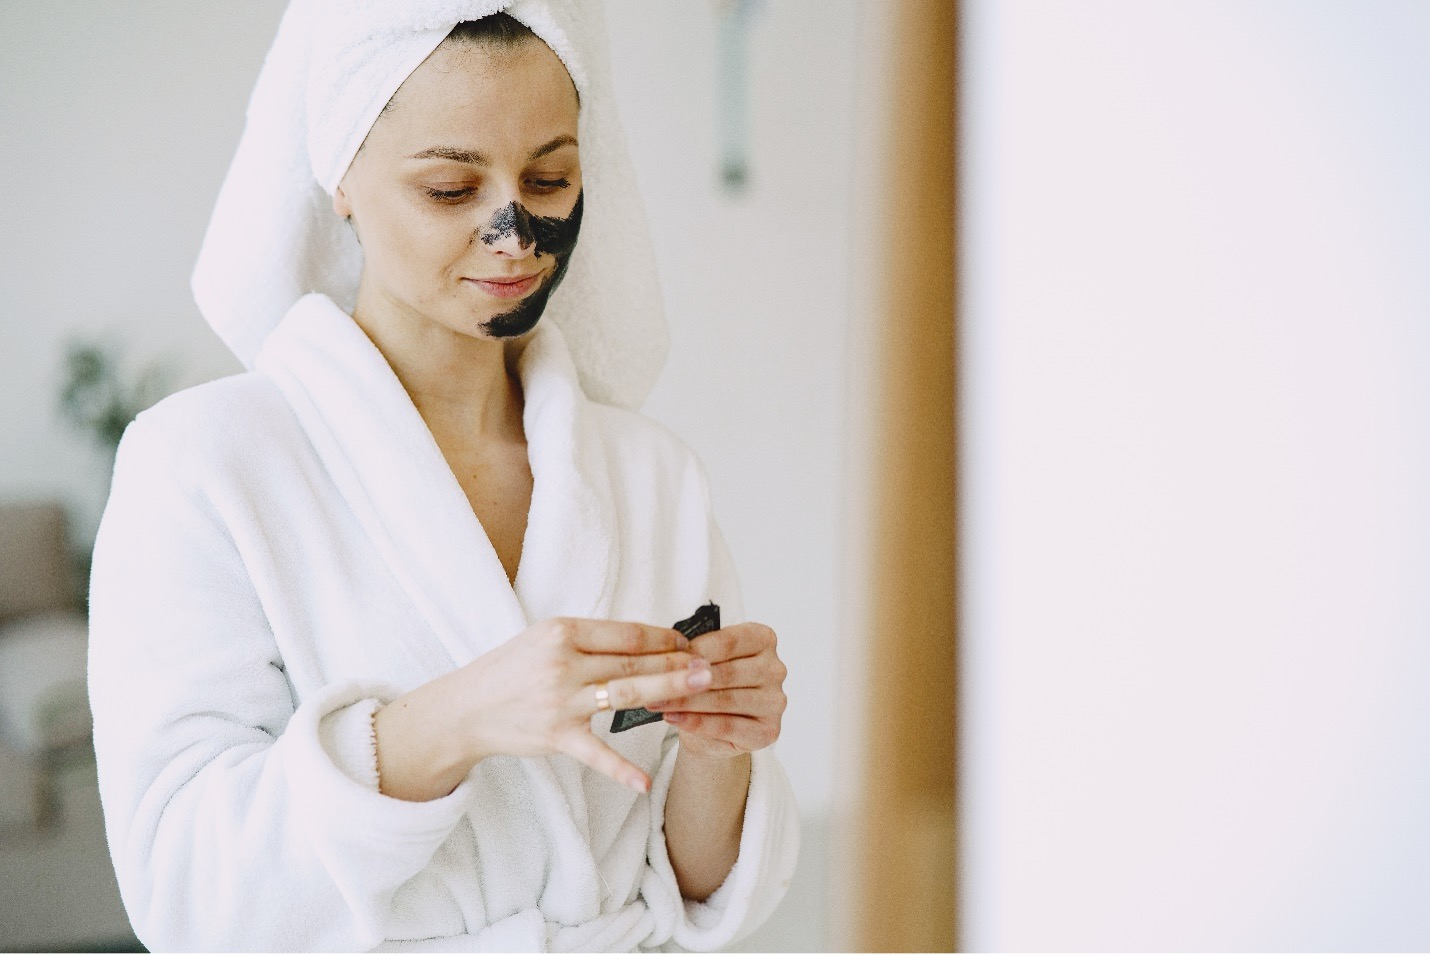 Woman applying face mask wearing a bathrobe and towel on her head.